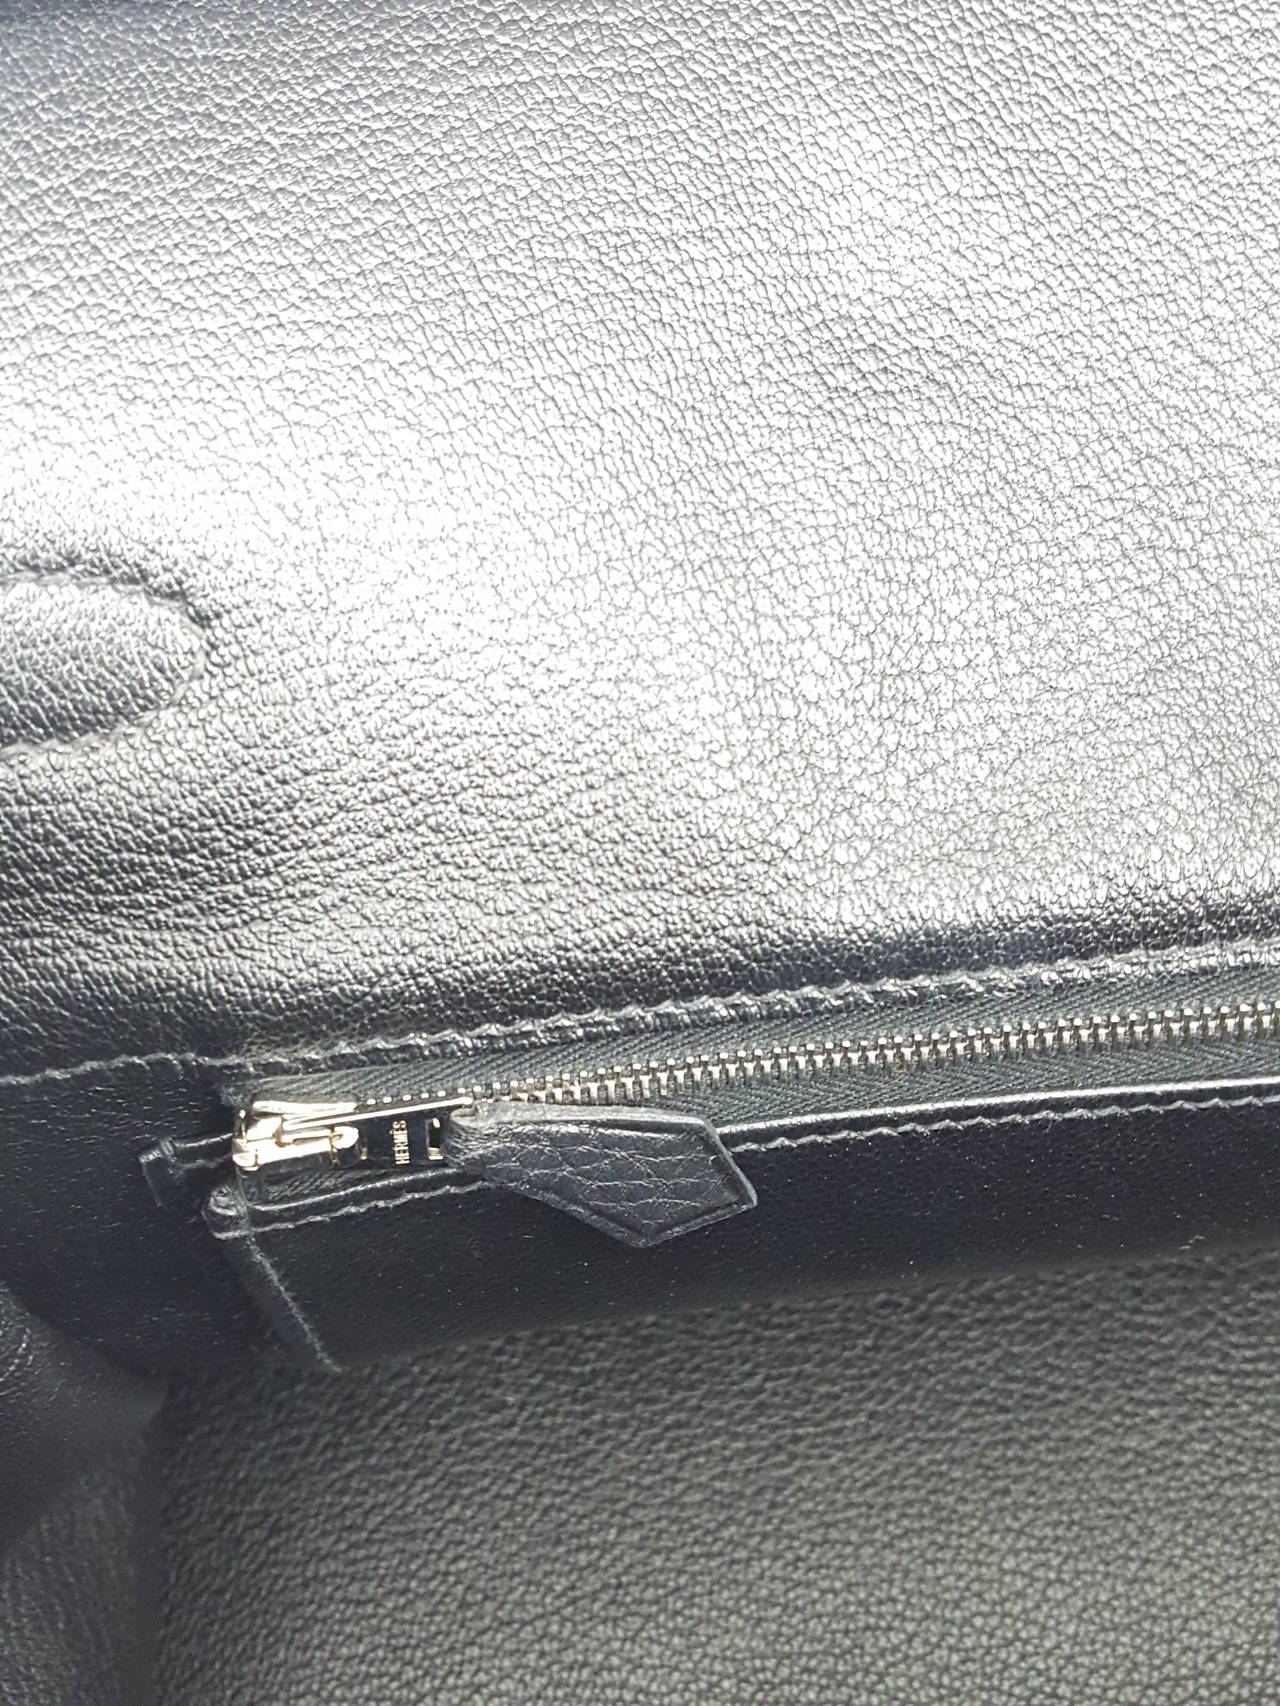 HERMES Birkin 35 CM In Black Clemence Leather With Palladium Hardware. For Sale 3